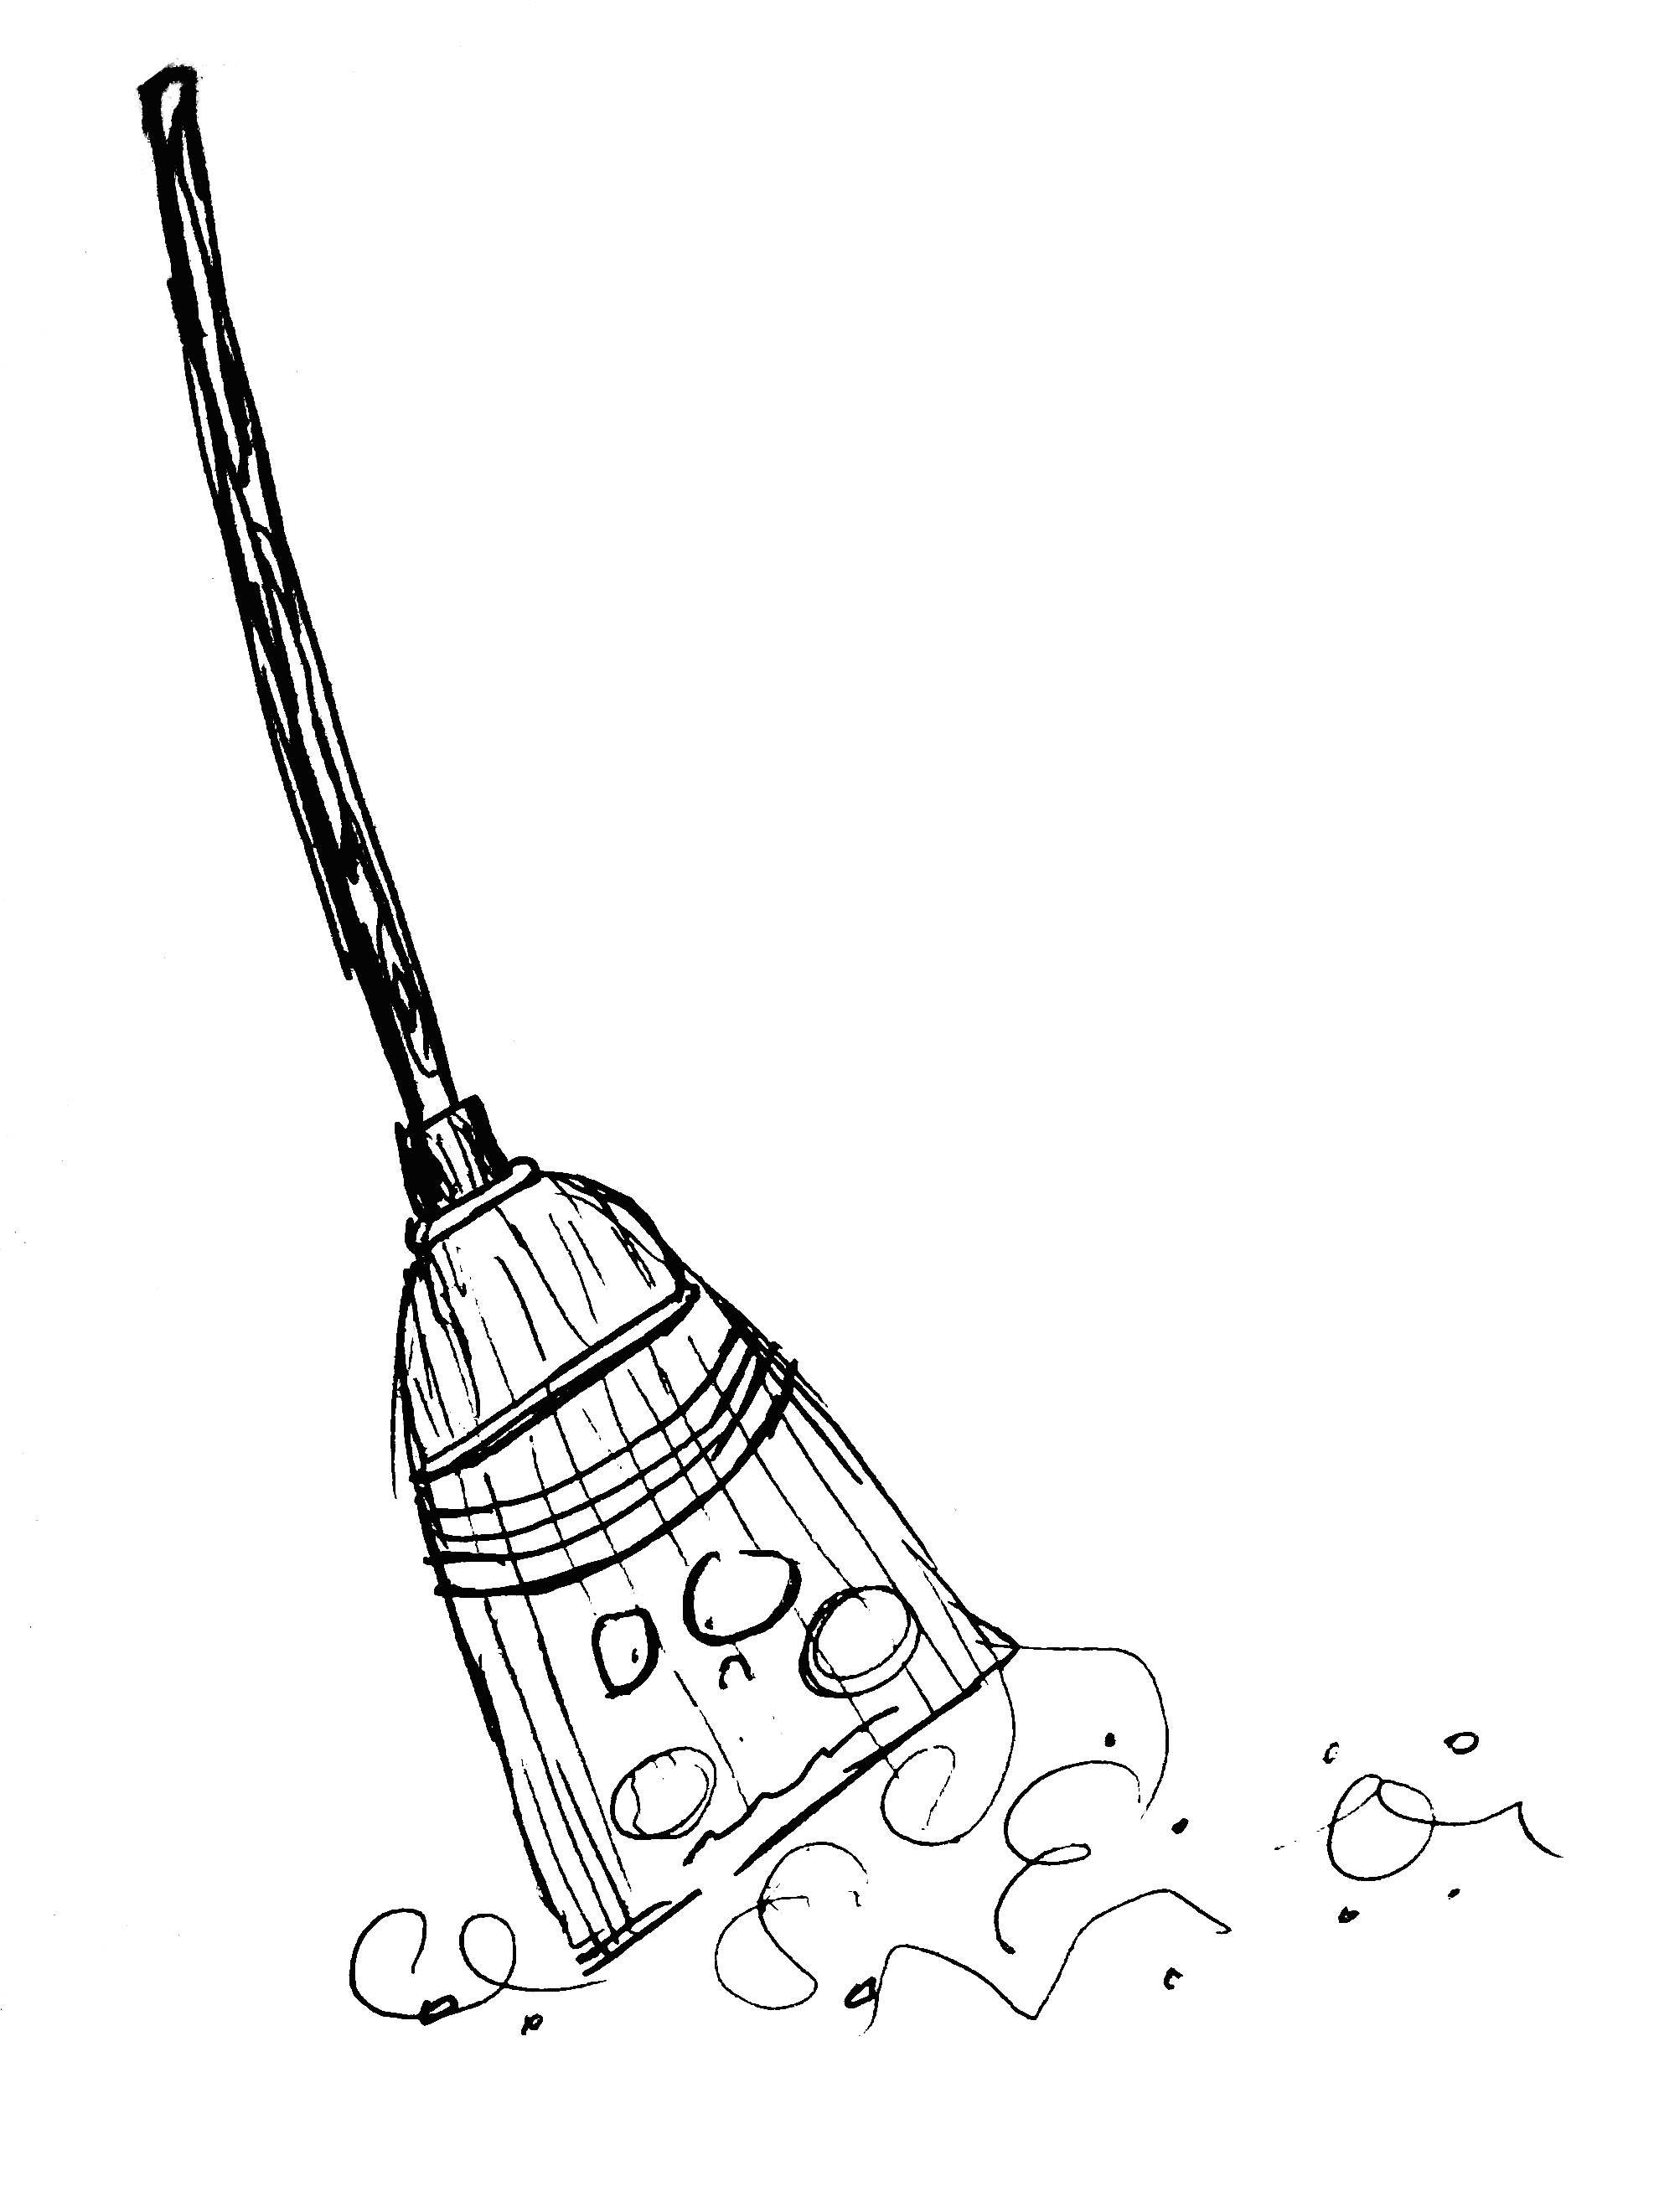 Broom Coloring Pages To Download And Print For Free